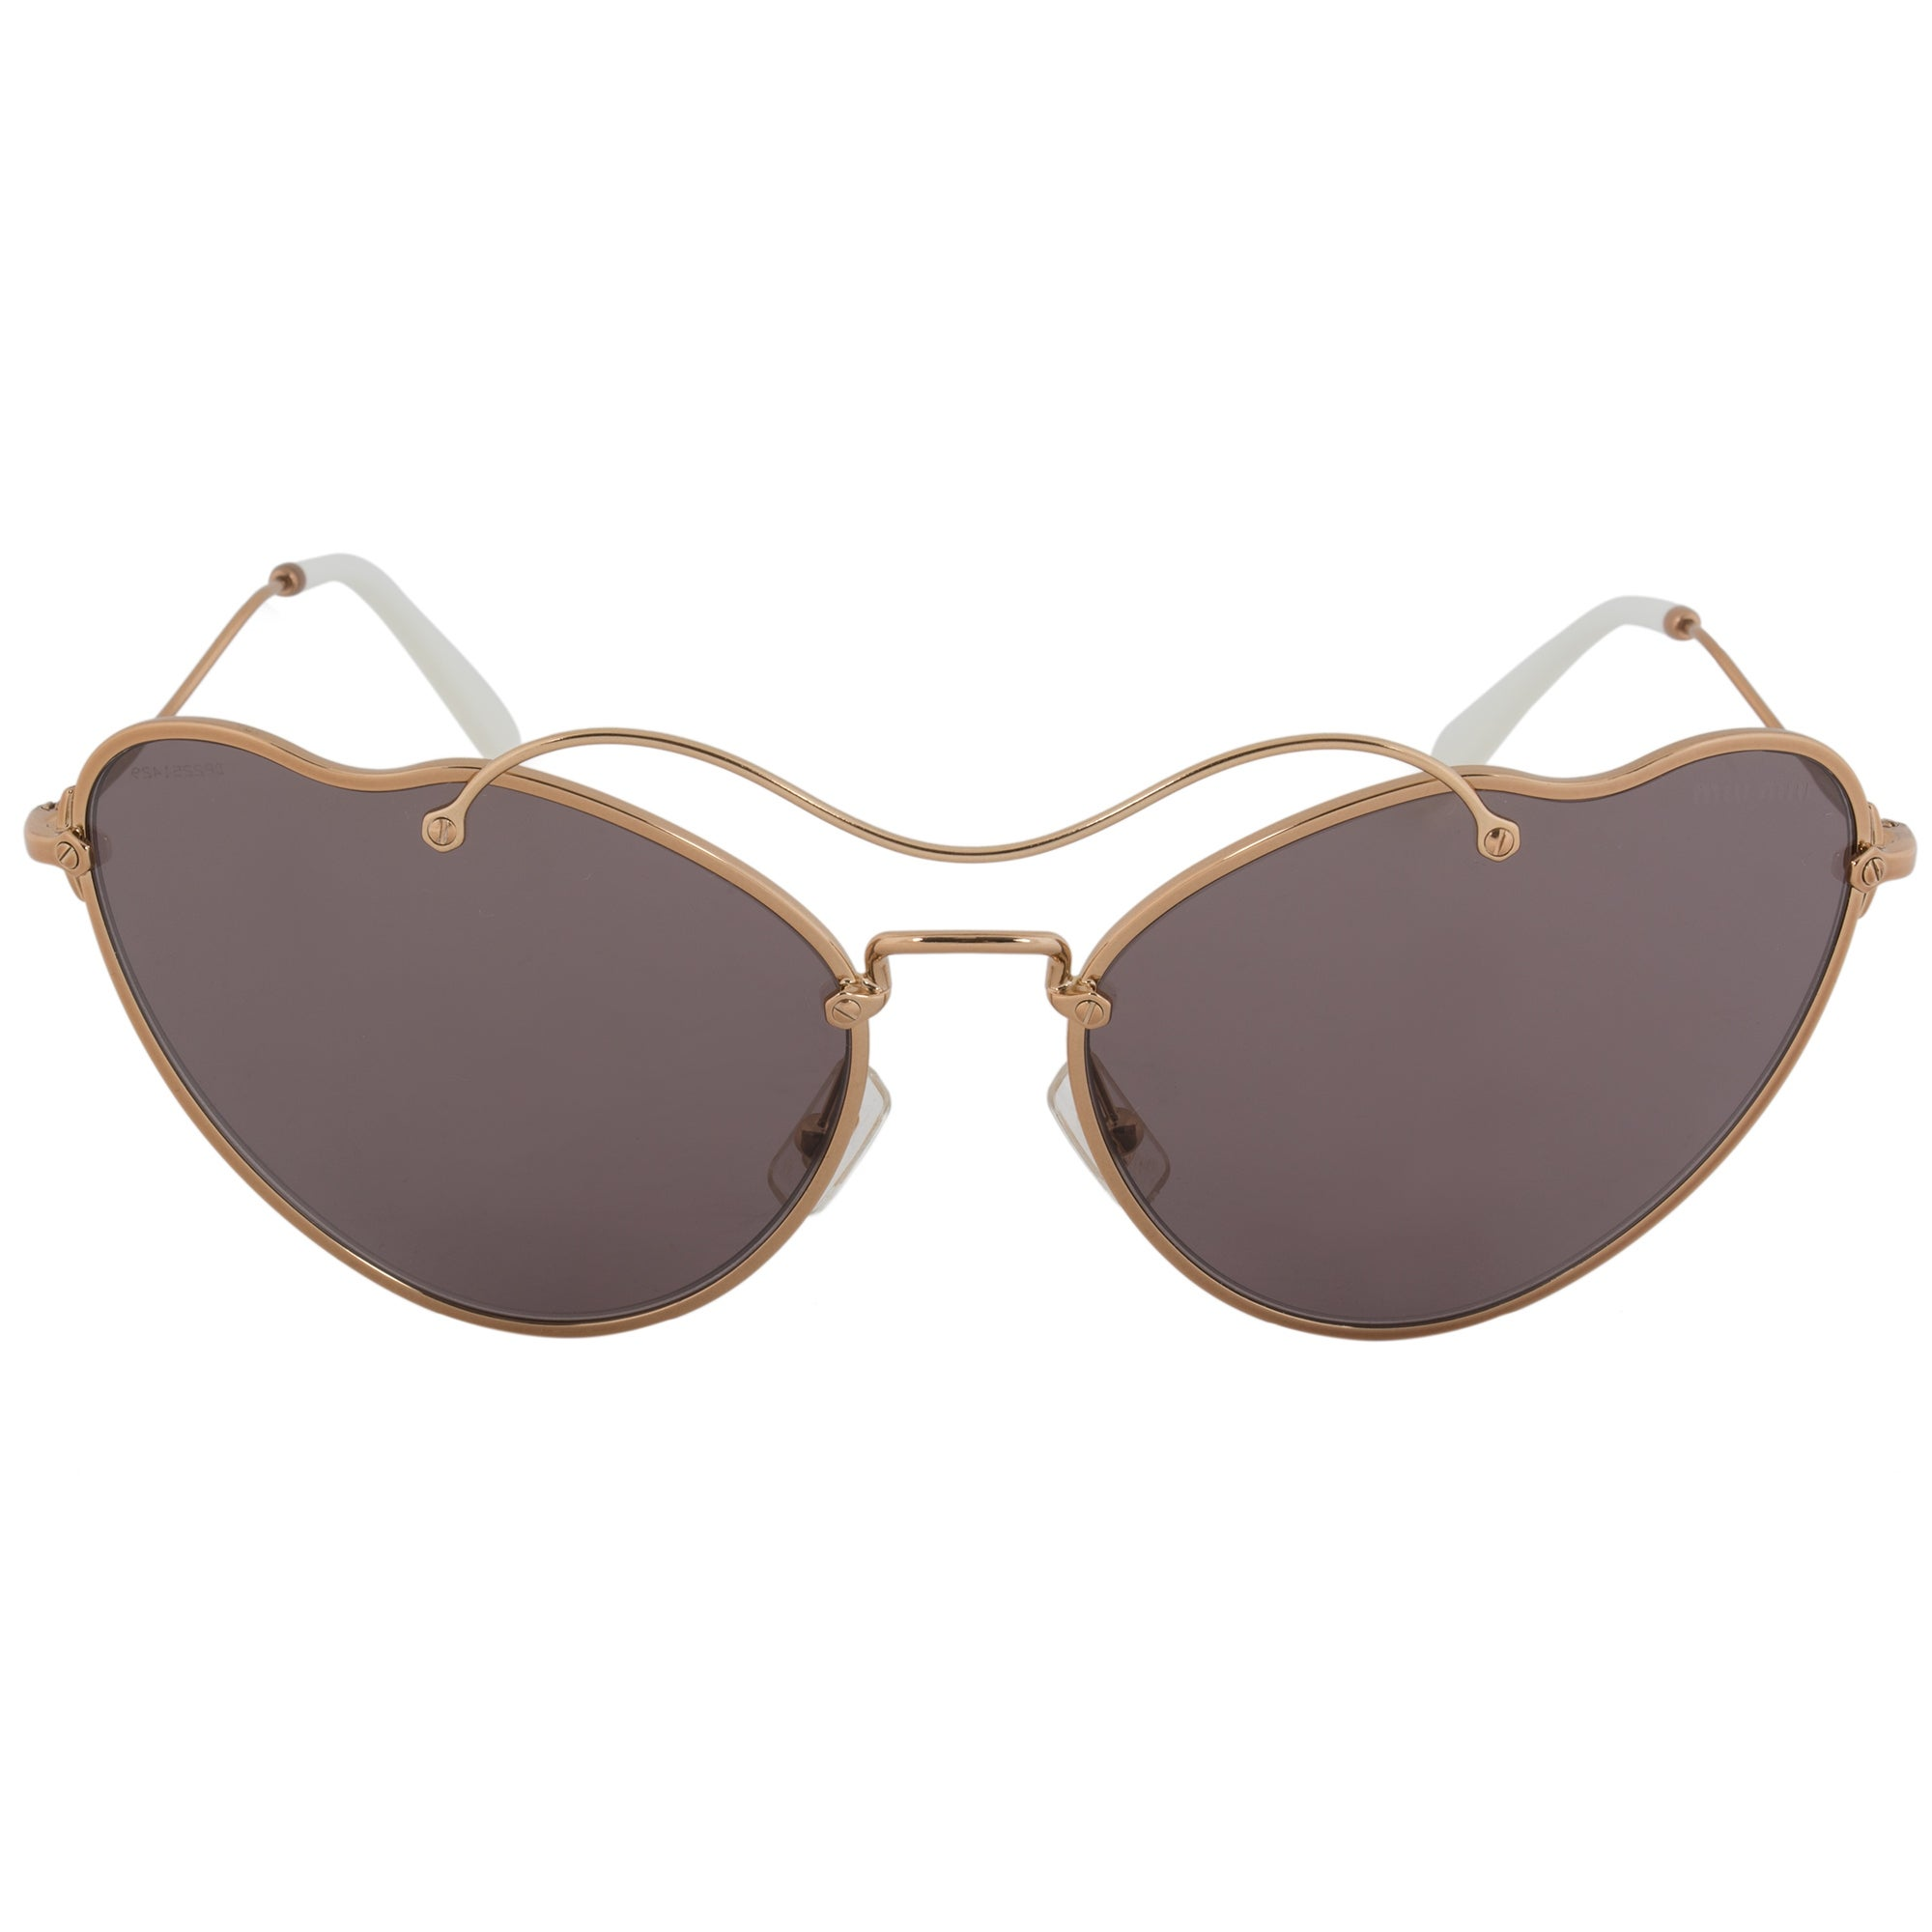 8407206d5e1 Shop Miu Miu Scenique Butterfly Sunglasses SMU55RS 7OE6X1 65 - Free  Shipping Today - Overstock - 19622650